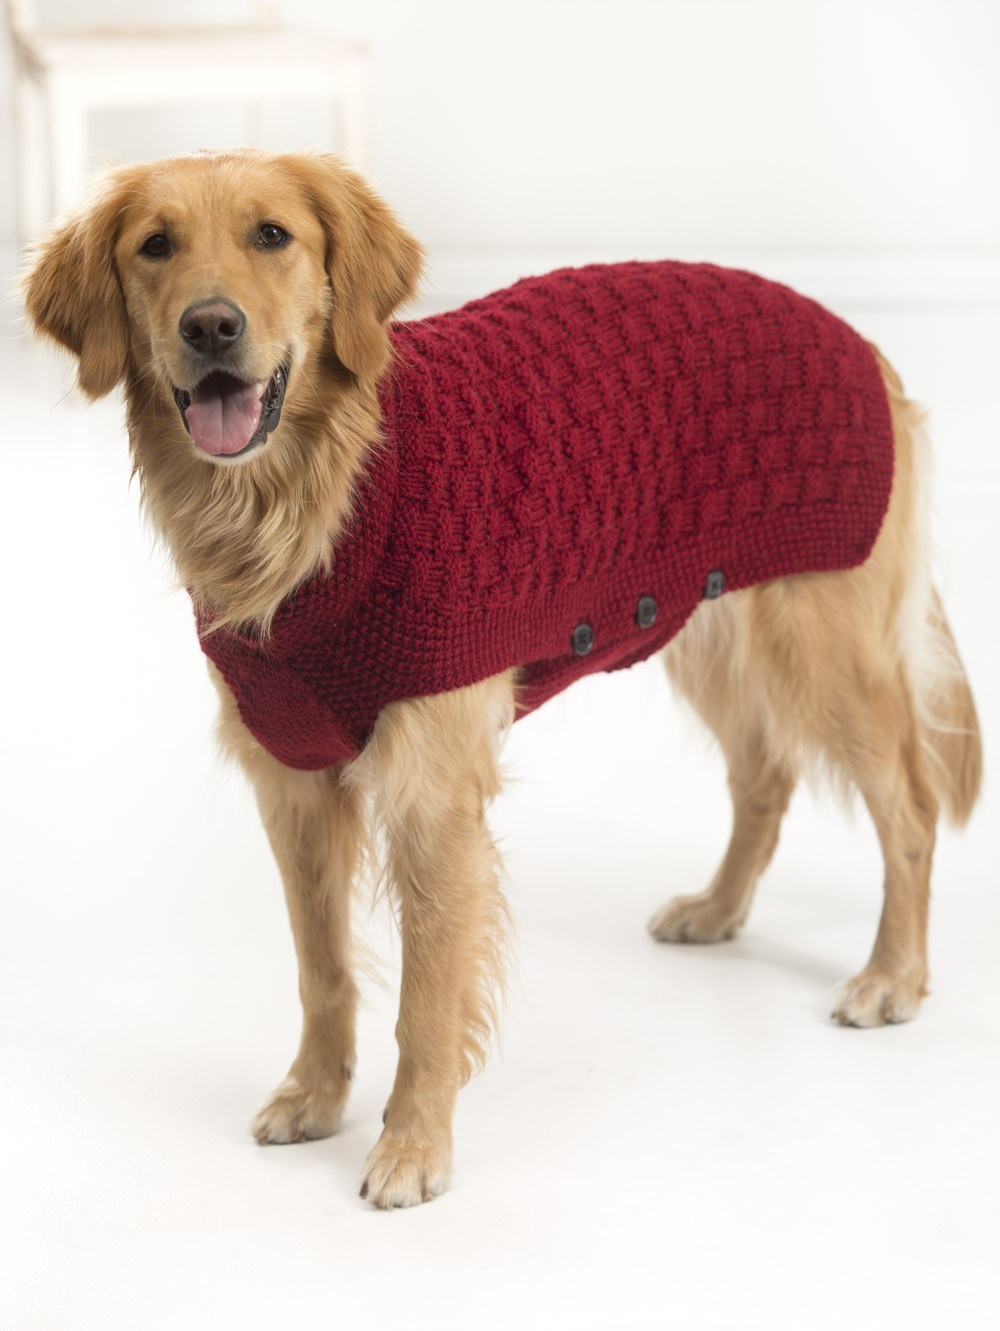 Dog Sweater Knitting Patterns 10 Stunning Examples Of Beautiful Fall Dog Sweaters Free Knitting